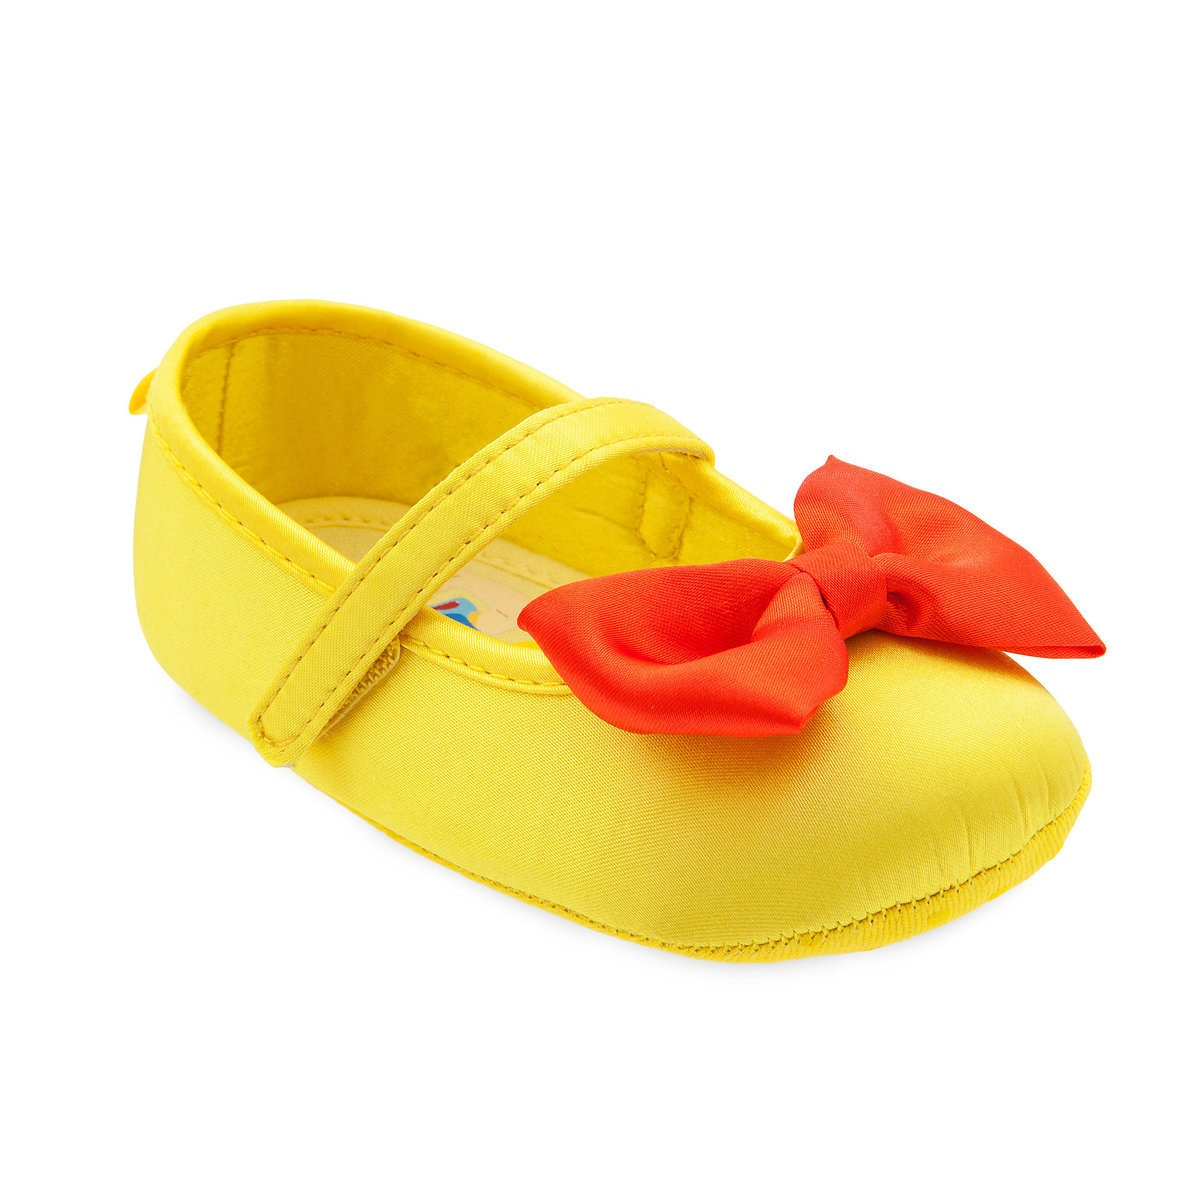 208ef2a4088 Product Image of Snow White Costume Shoes for Baby   1